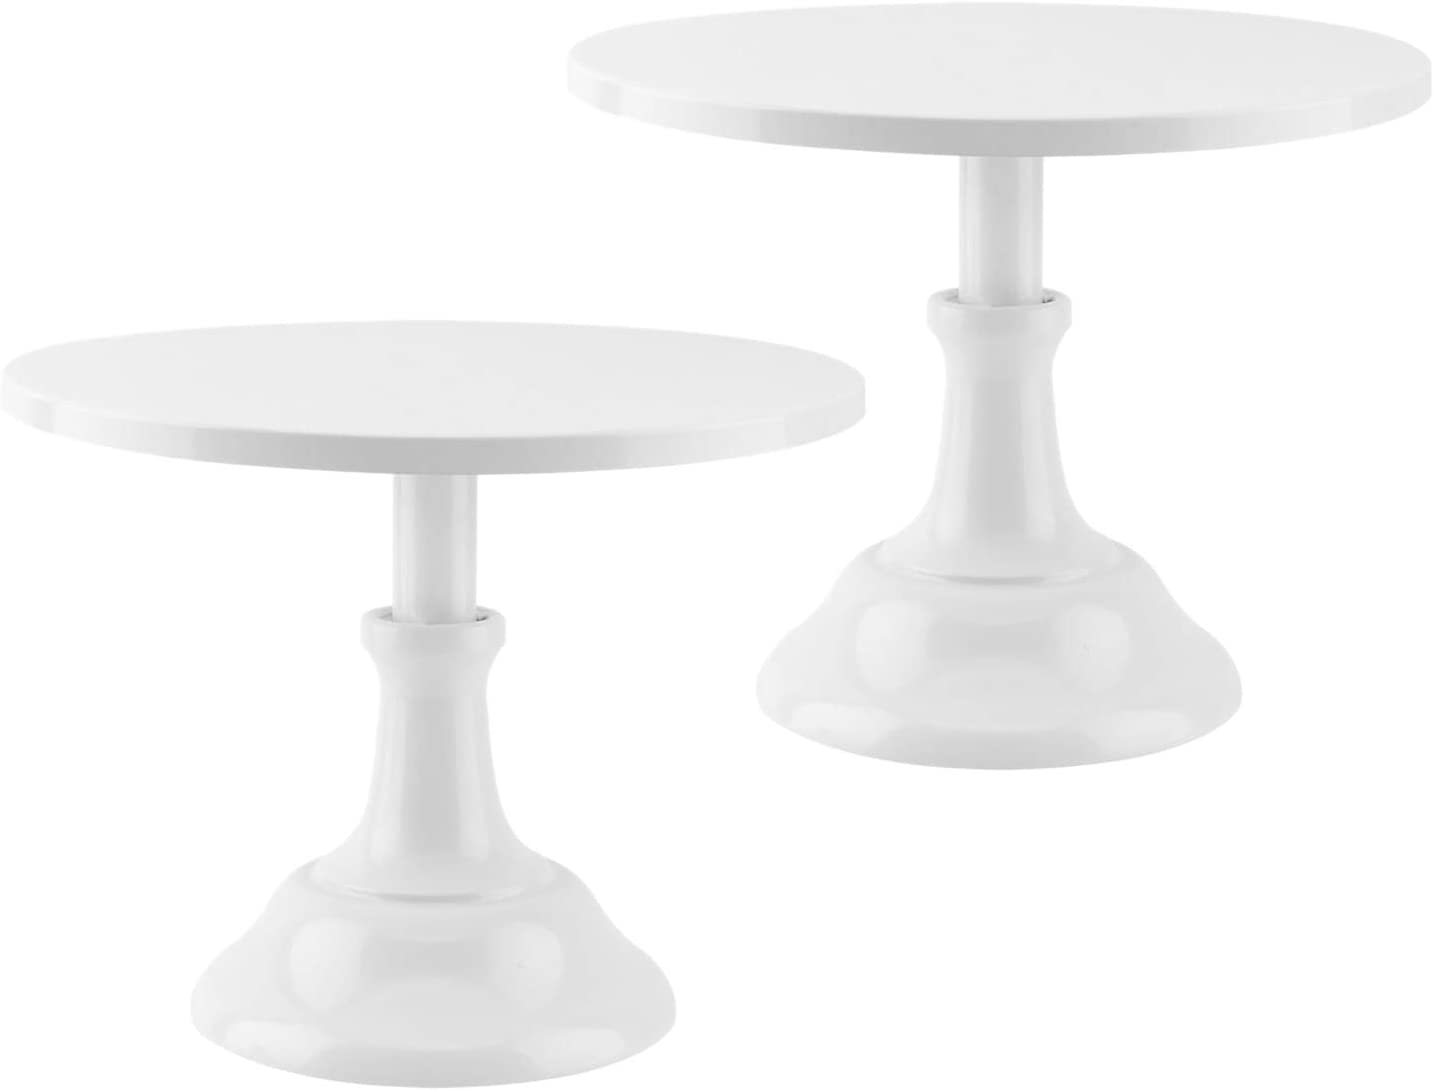 KENTLI 2-Set 10Inch Cake Stand Round Metal Cupcake Stand Dessert Stands Candy Display Tray for Wedding Party Birthday Celebration (White)